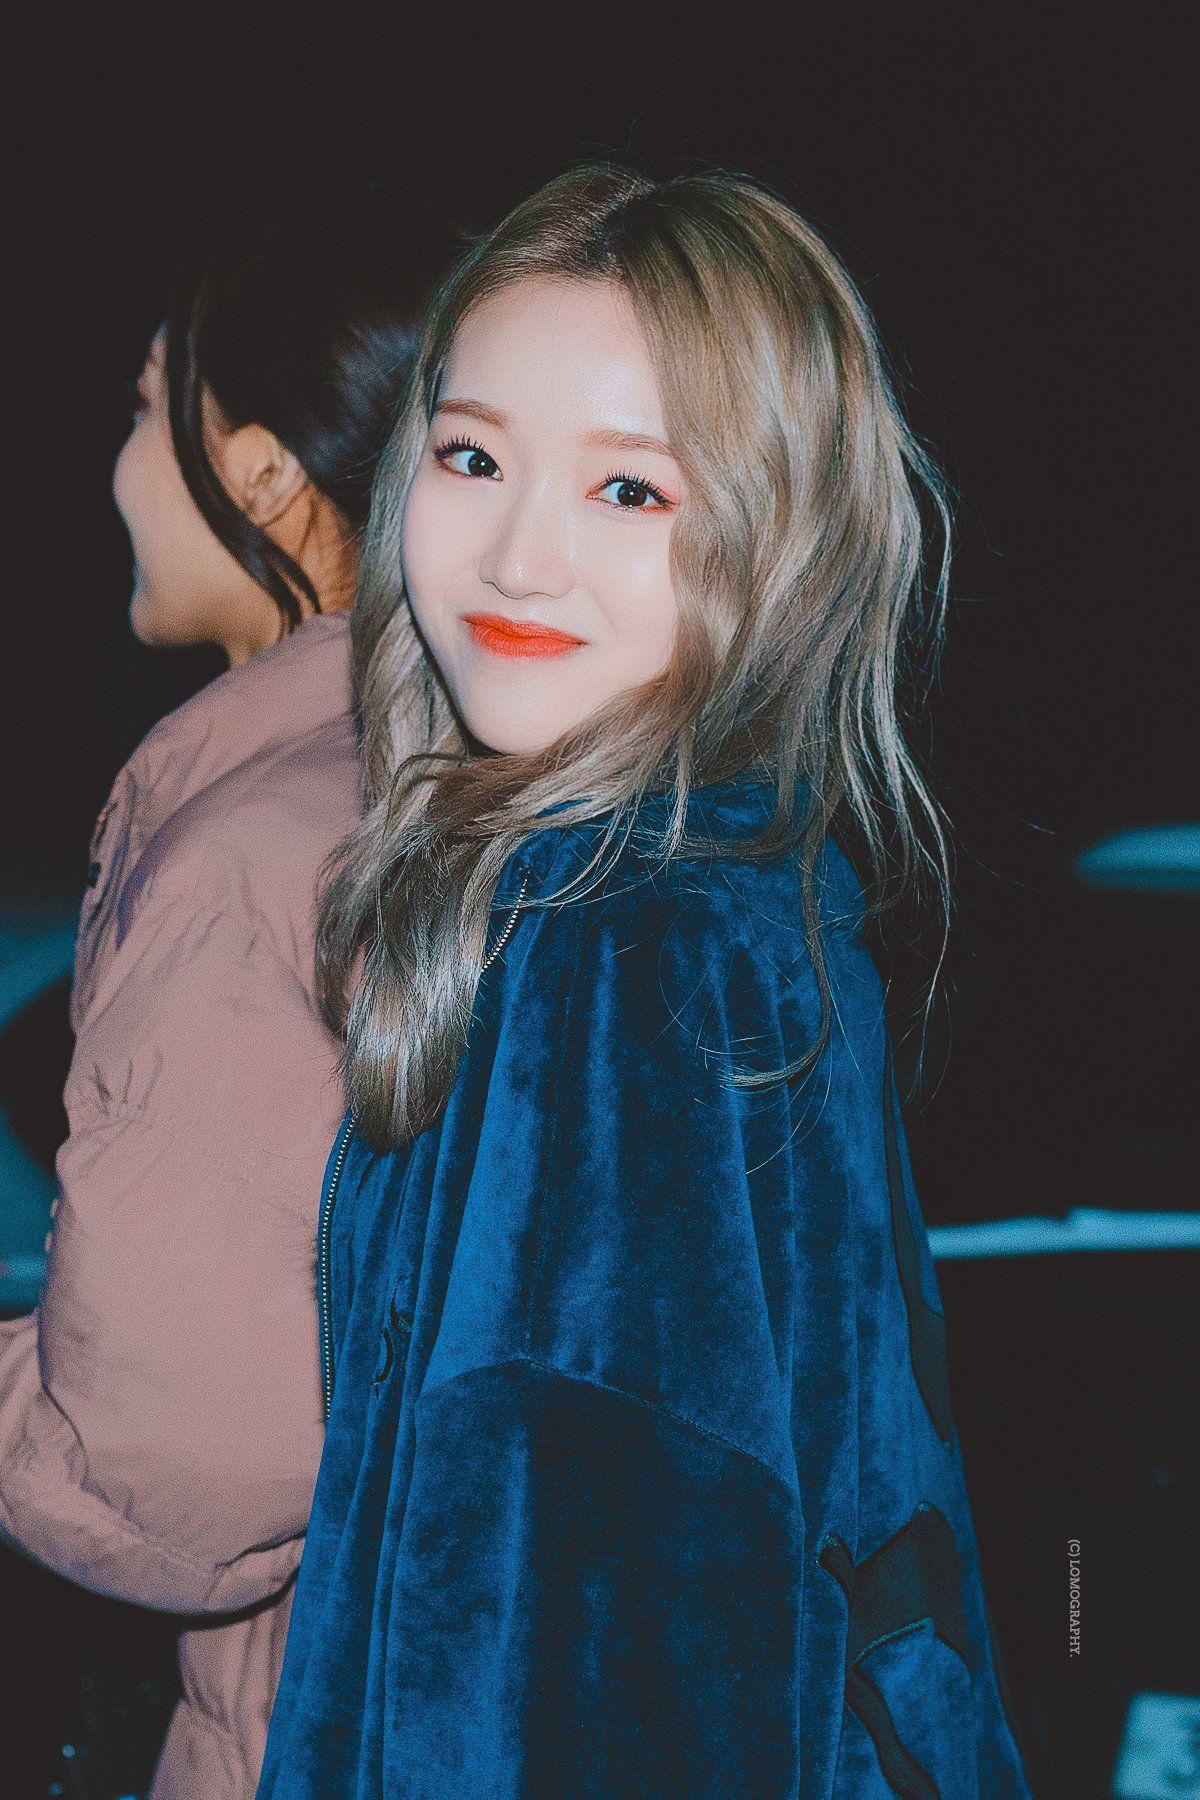 Pin By Gabs With B On Loona Gowon Loona Lomography Kpop Girls